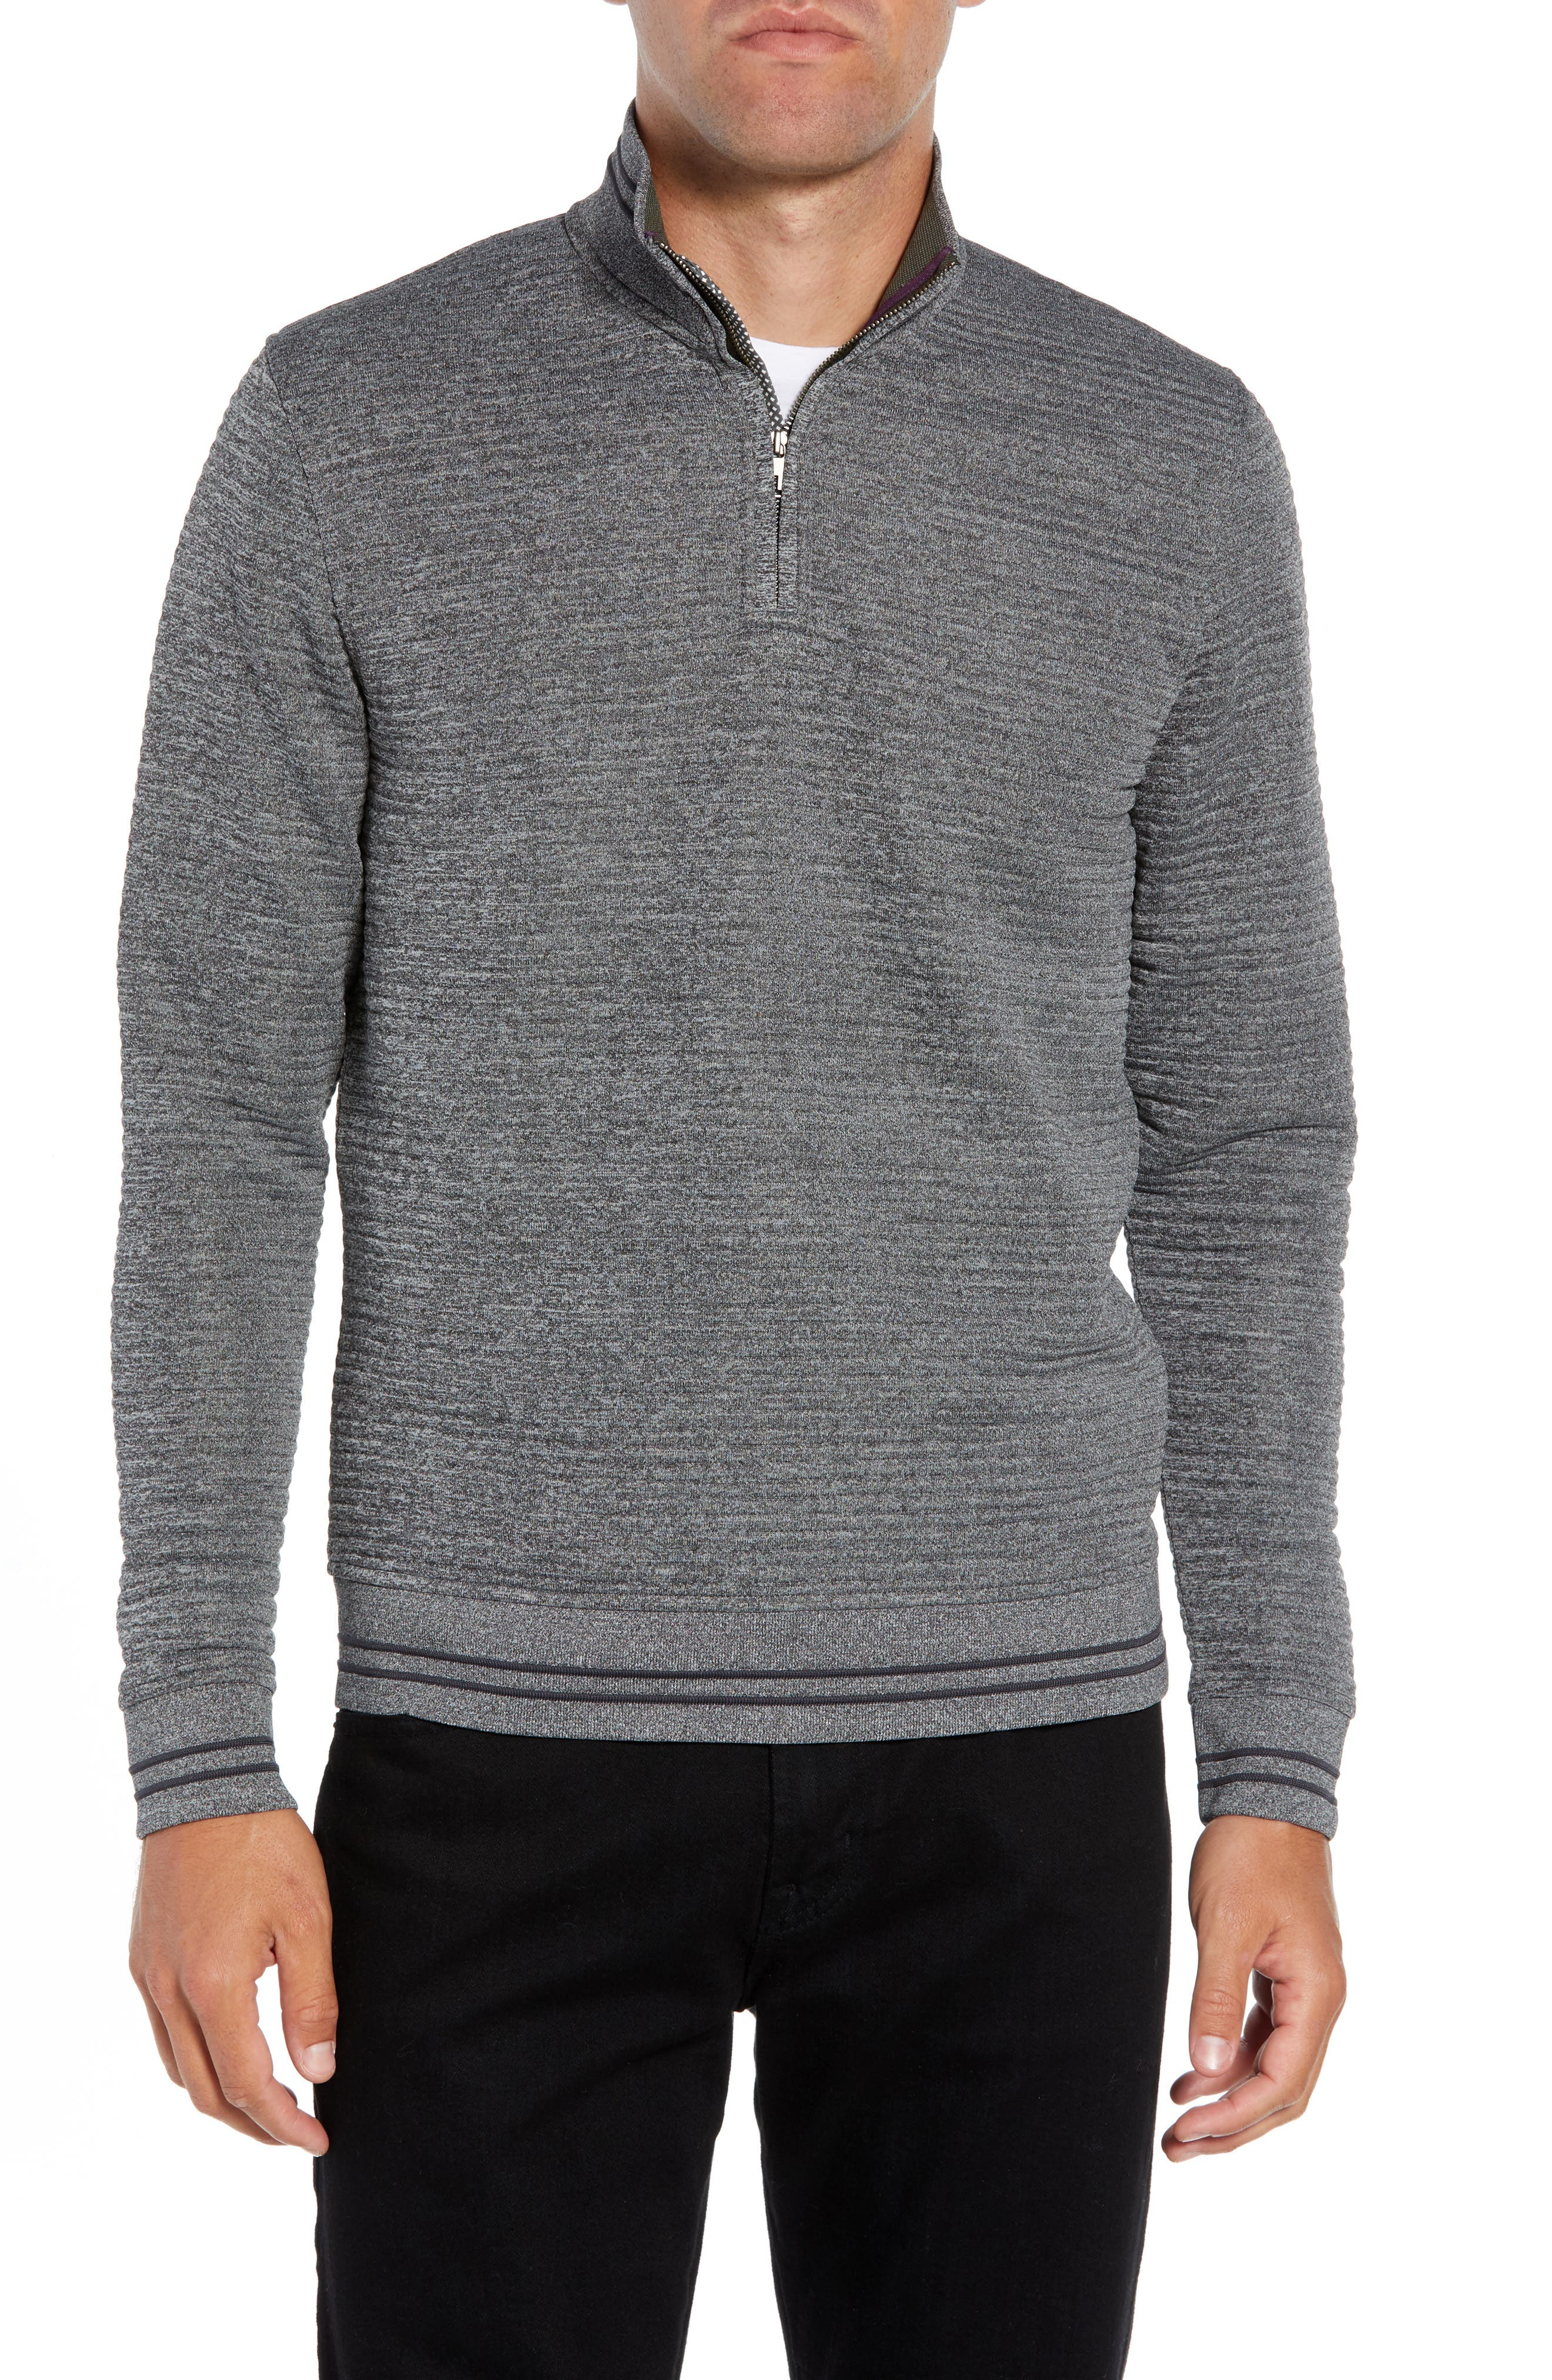 TED BAKER LONDON Ketchup Trim Fit Half Zip Pullover, Main, color, 020